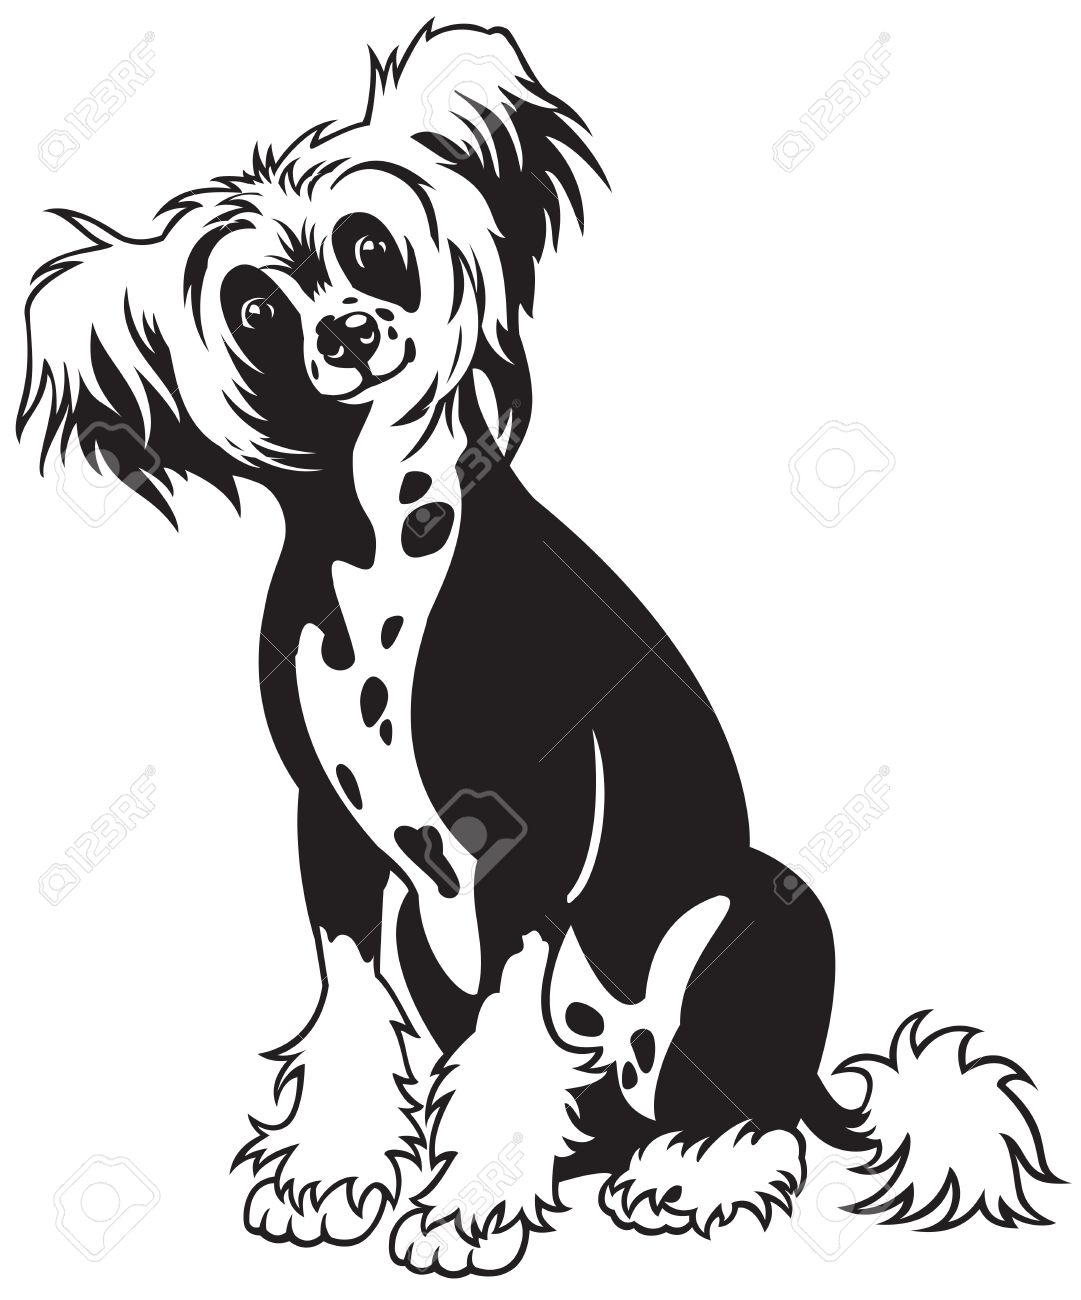 Chinese crested clipart.